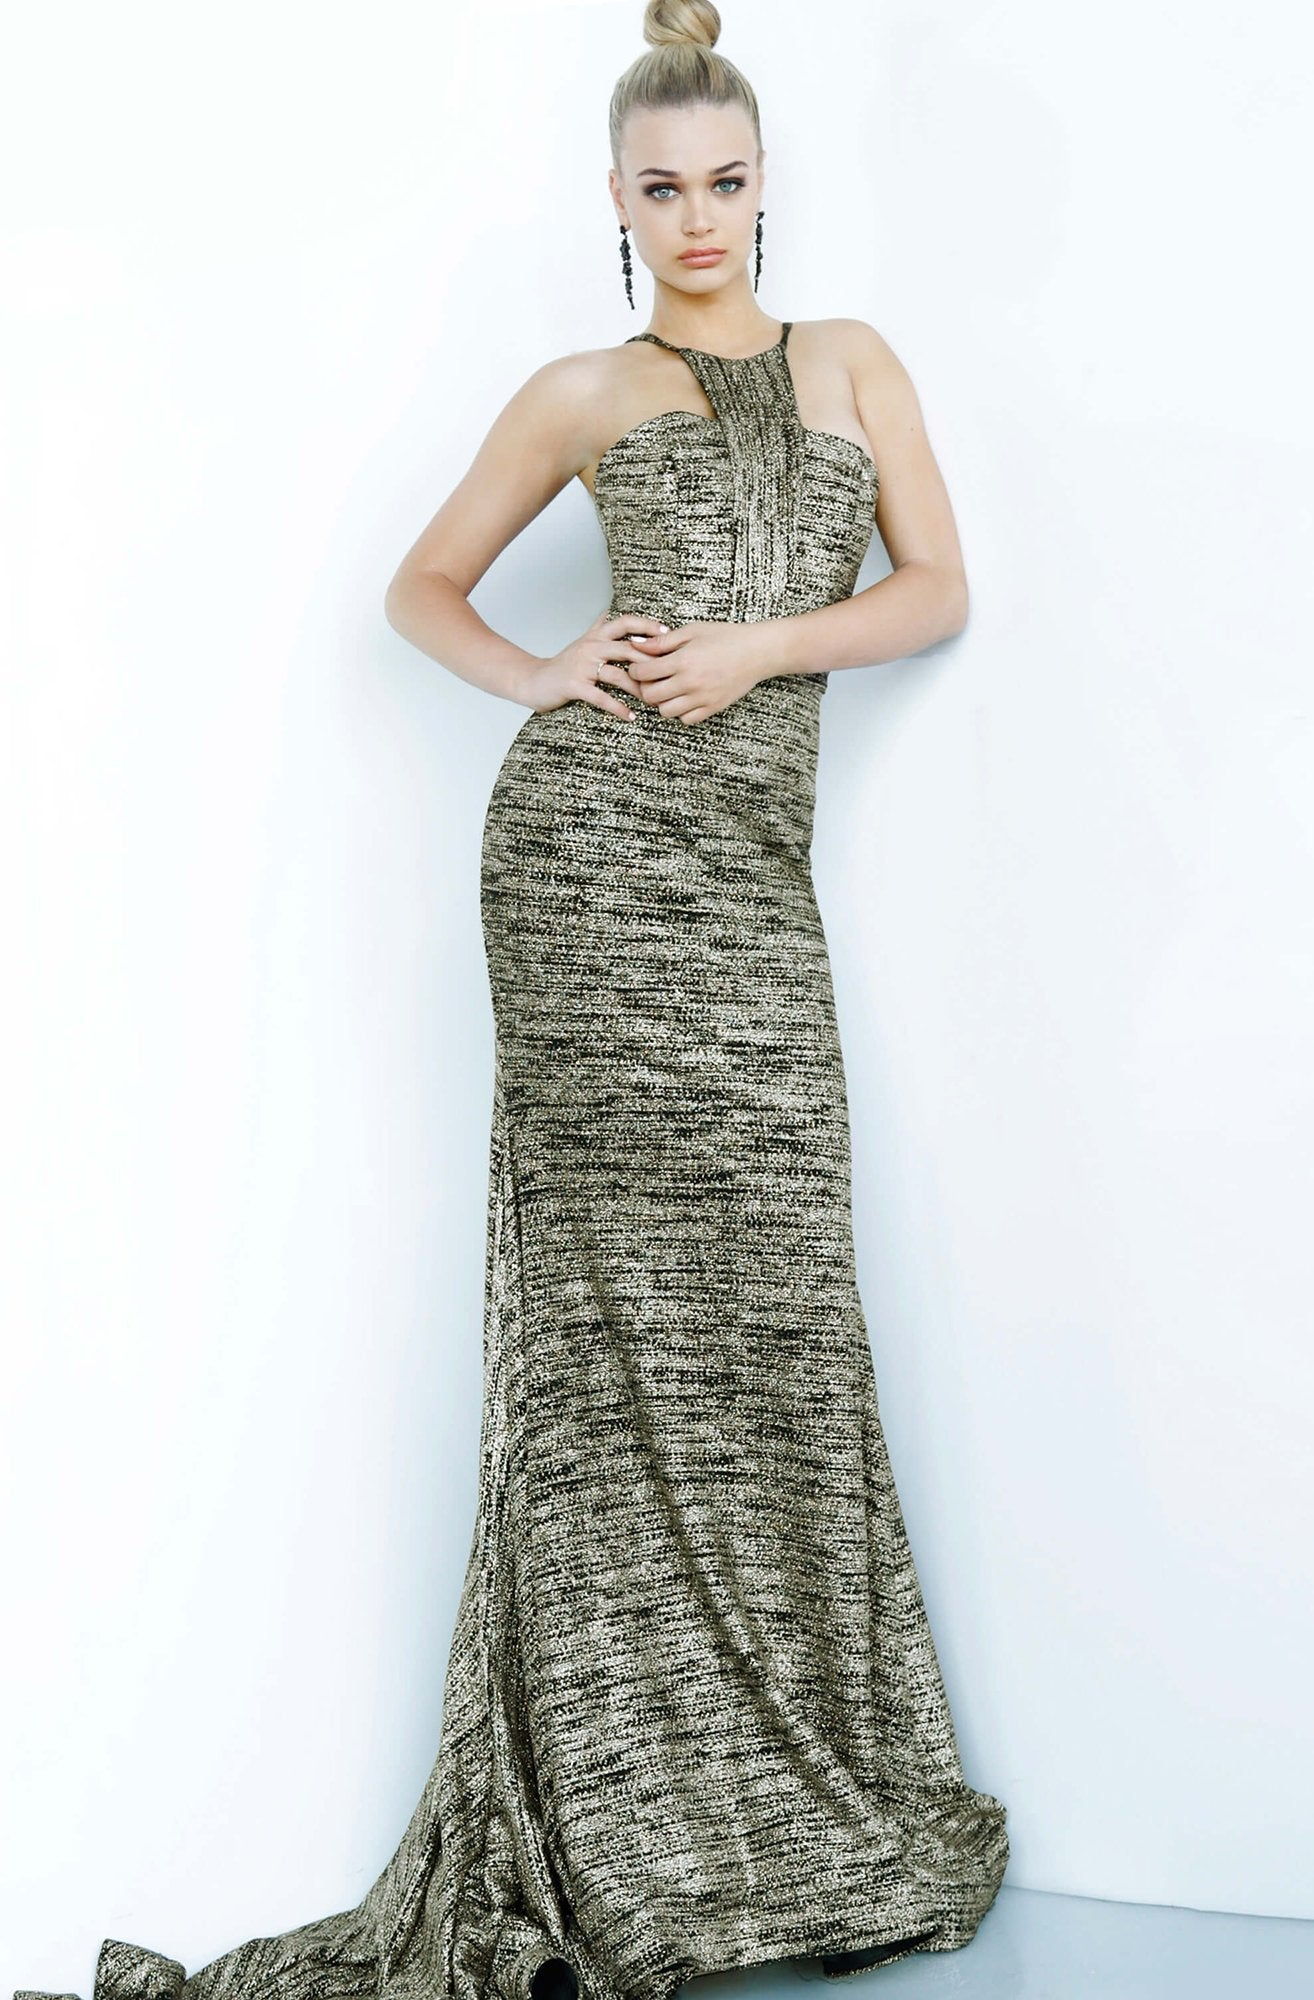 Jovani - 1559 Cut in Shoulders Halter Neck Glitter Knit Prom Dress In Black and Gold